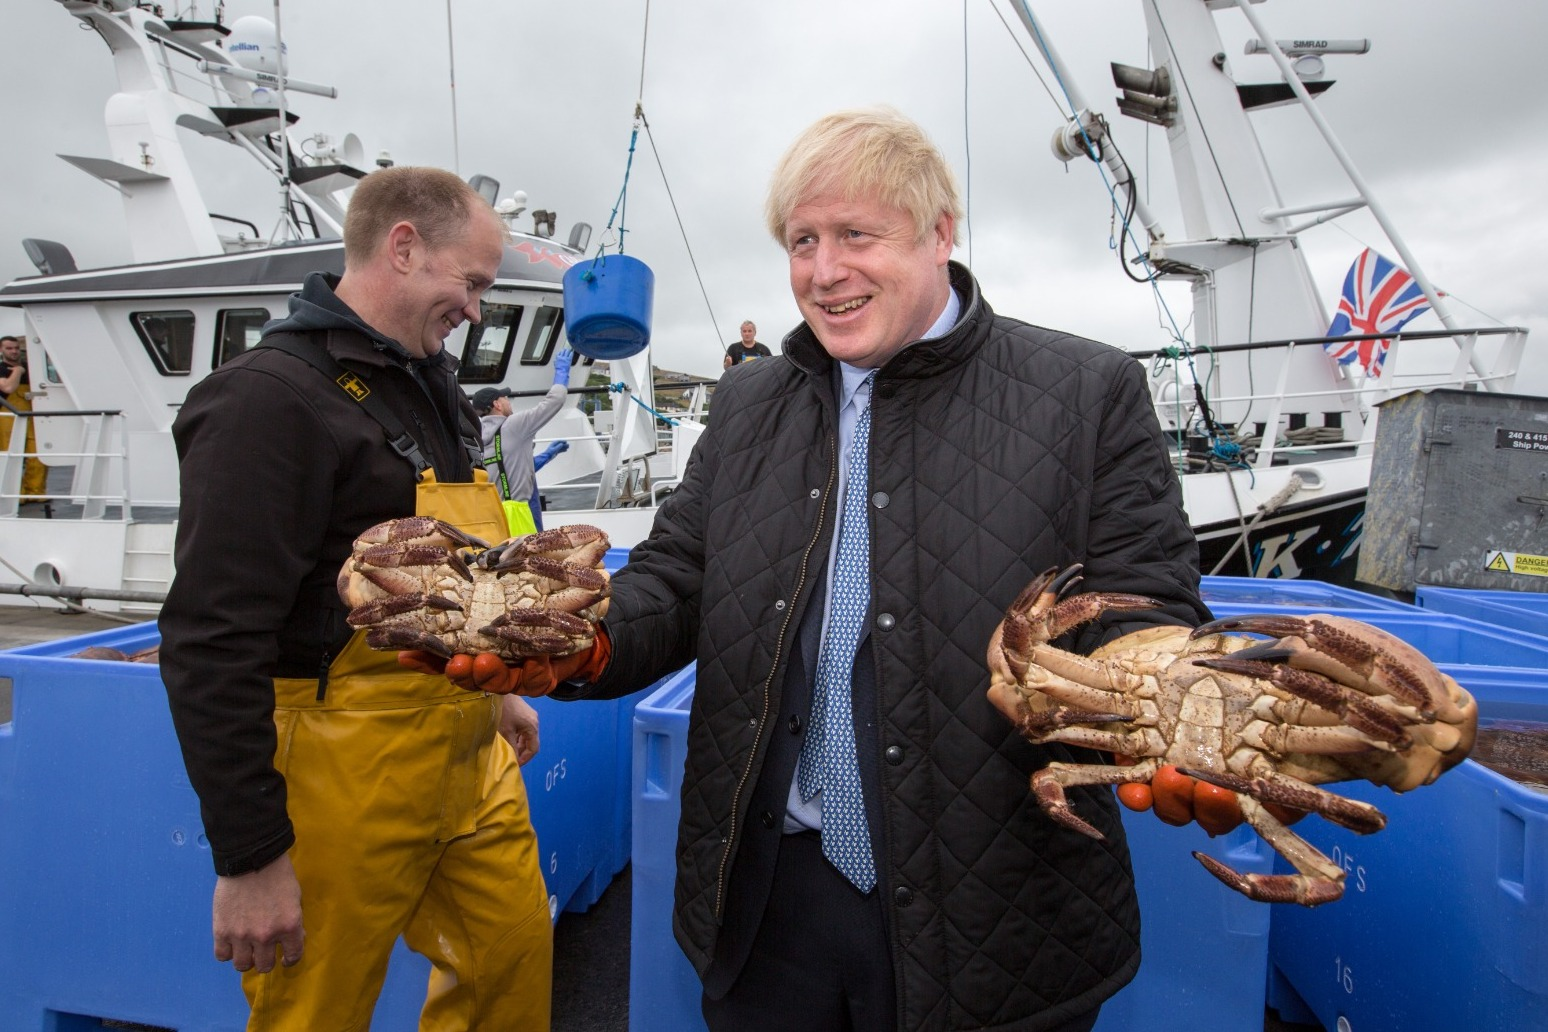 PM in Scotland: UK is a